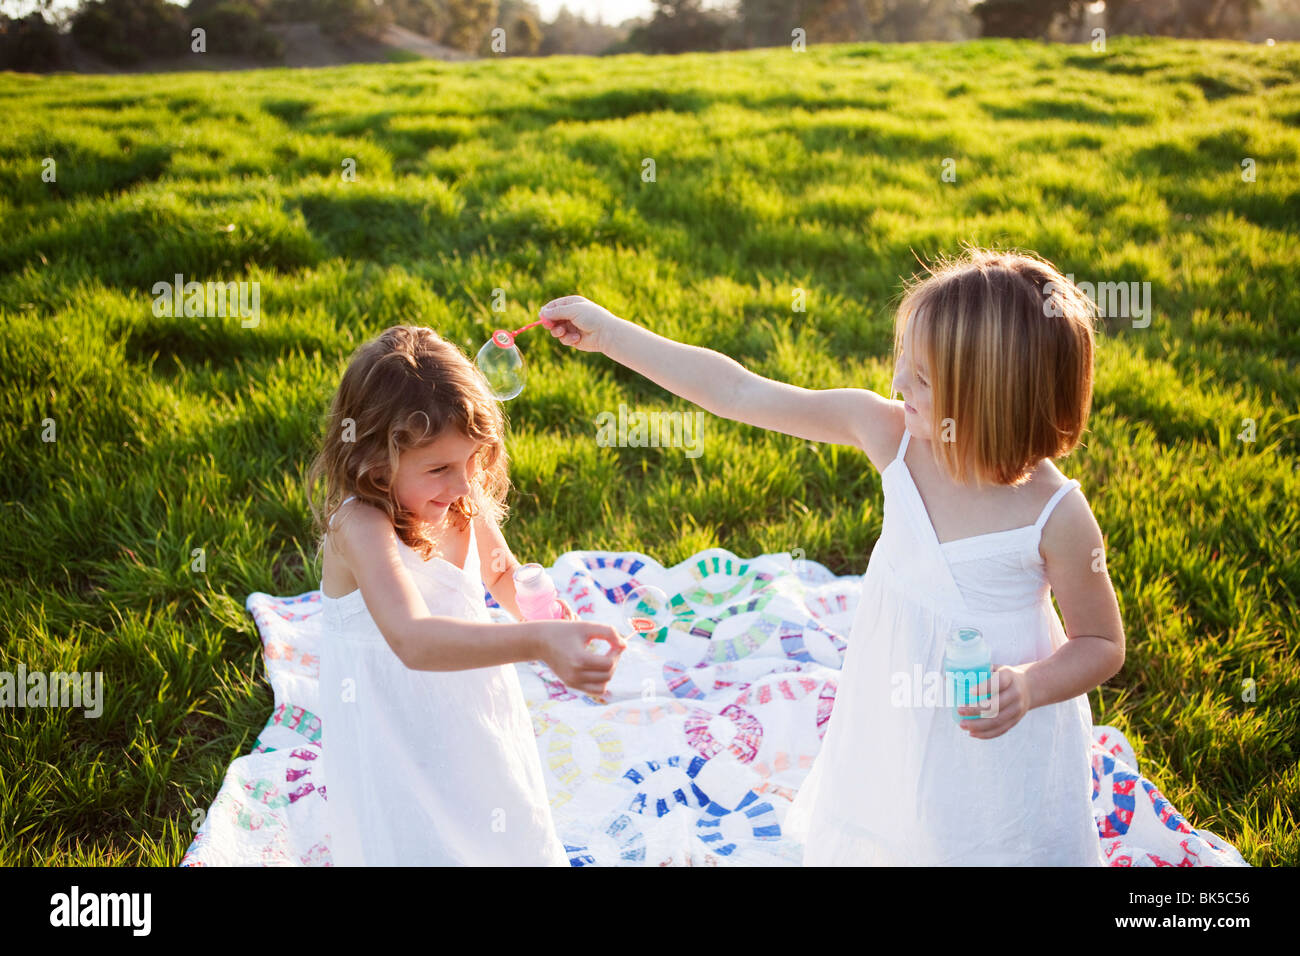 Girls on picnic blanket playing with bubbles - Stock Image